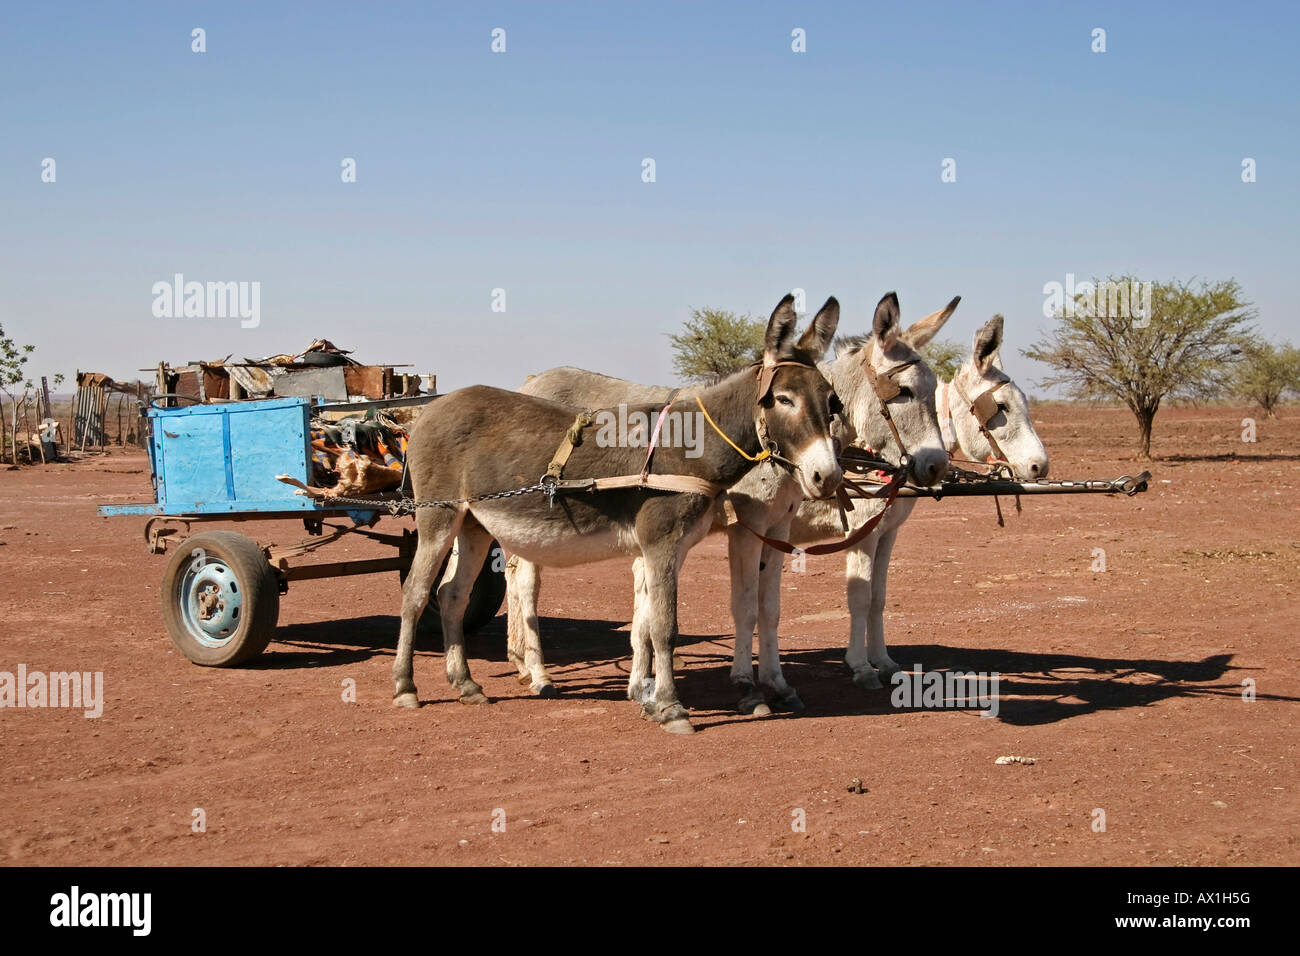 Donkeys with Donkey cart, South of Namibia, Africa Stock Photo